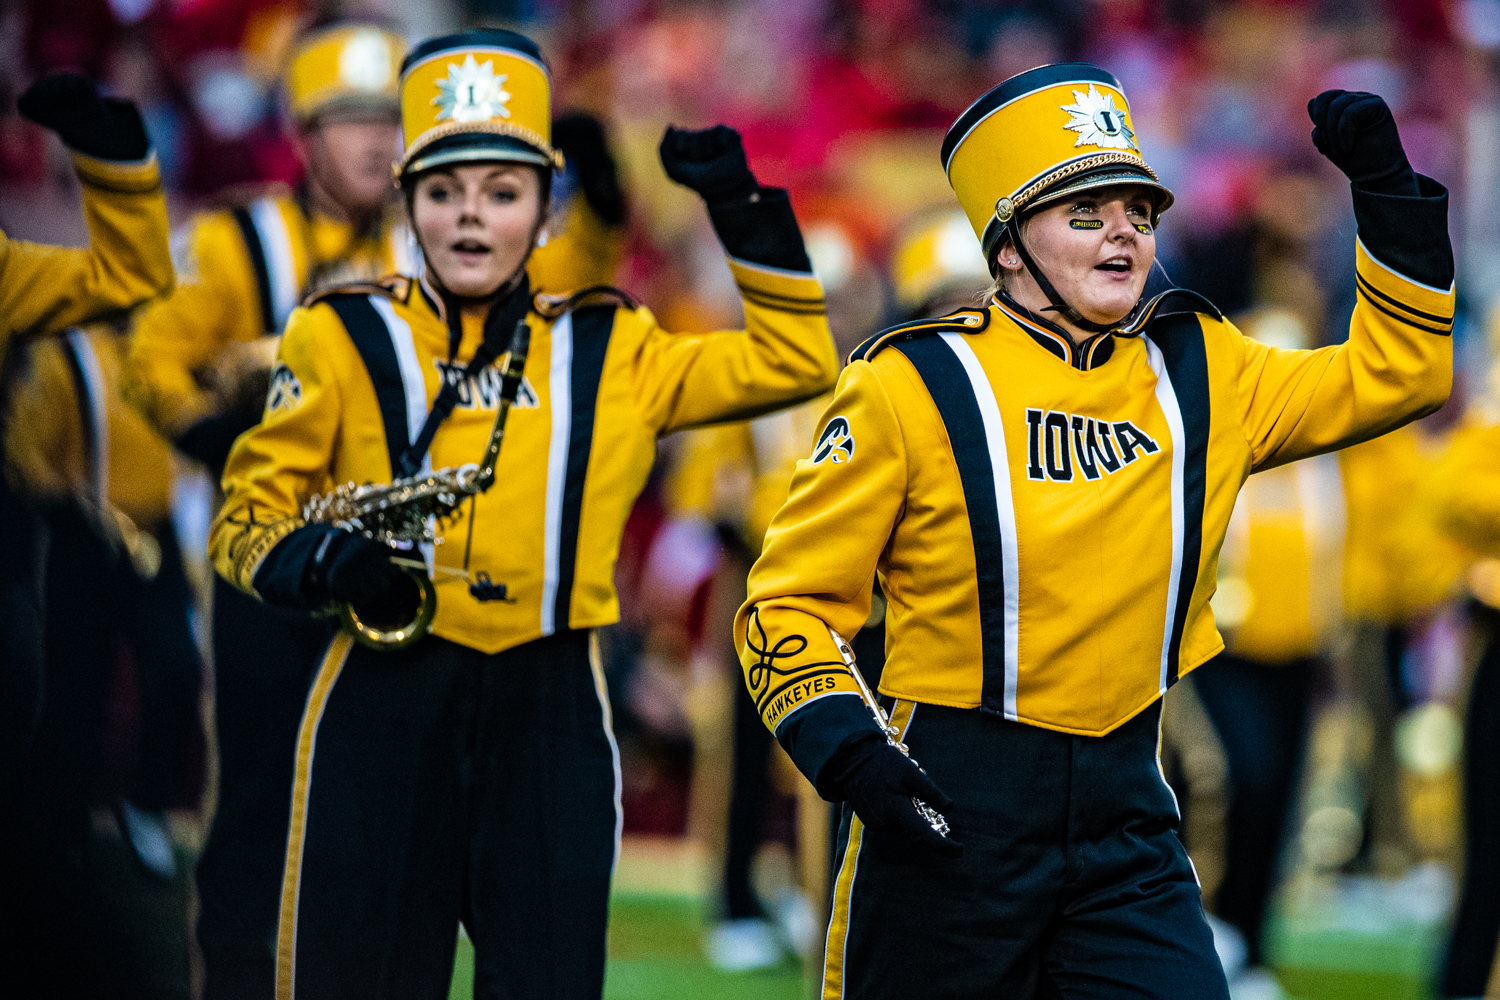 The Hawkeye Marching Band performs during a football game between Iowa and Iowa State at Jack Trice Stadium in Ames on Saturday, September 14, 2019. The Hawkeyes retained the Cy-Hawk Trophy for the fifth consecutive year, downing the Cyclones, 18-17.